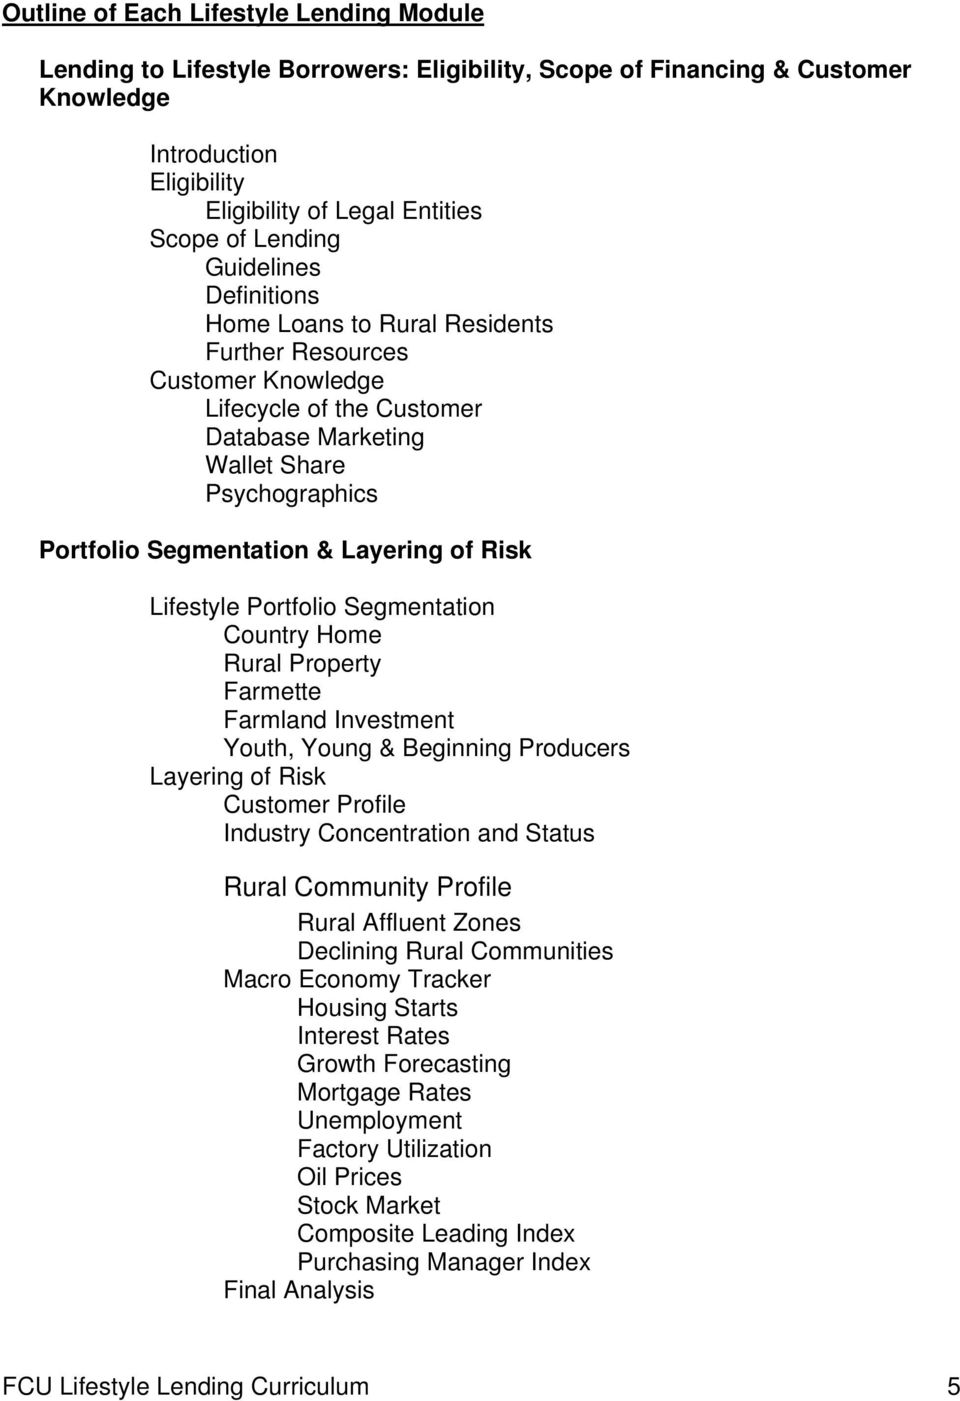 Risk Lifestyle Portfolio Segmentation Country Home Rural Property Farmette Farmland Investment Youth, Young & Beginning Producers Layering of Risk Customer Profile Industry Concentration and Status